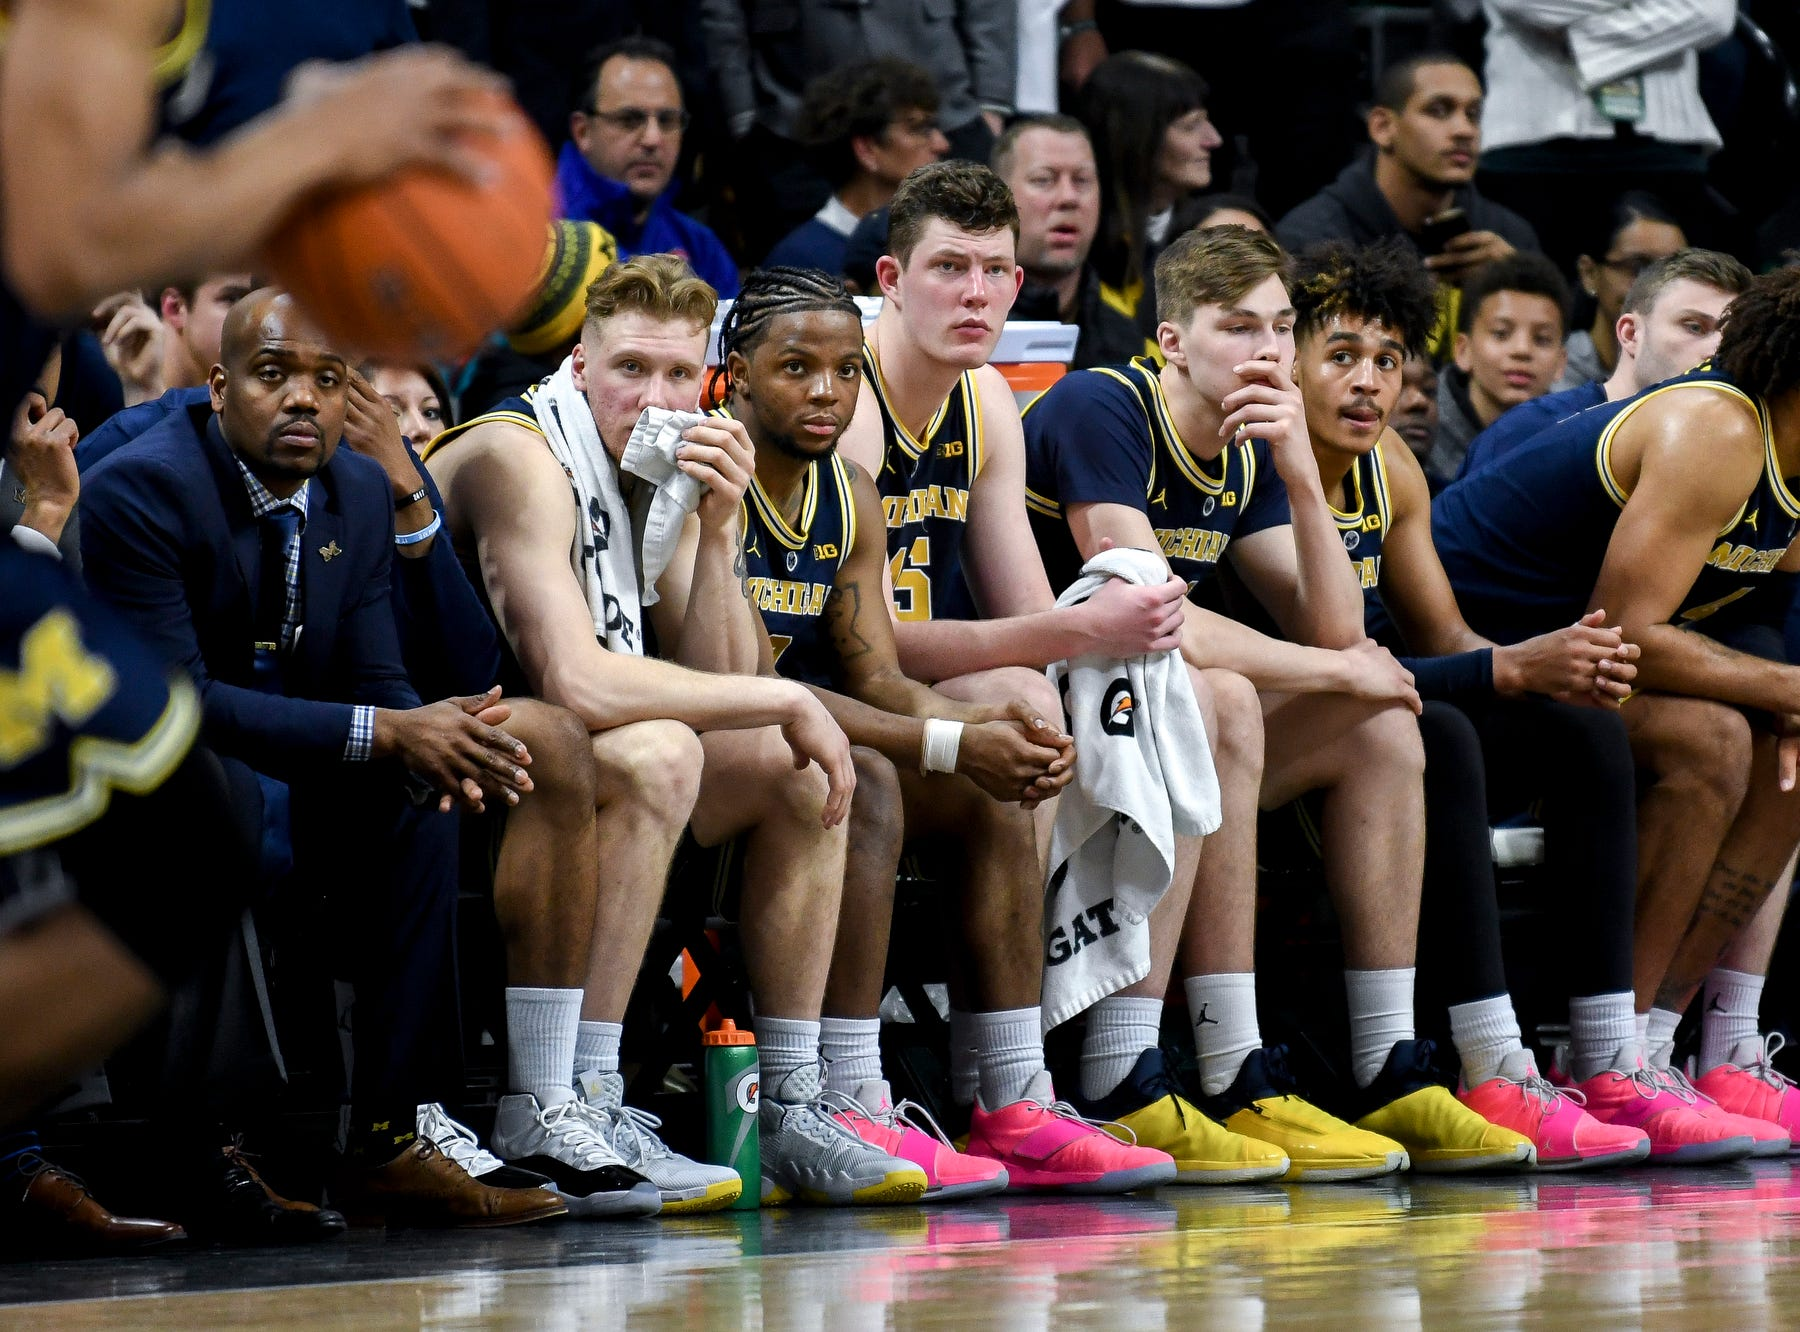 The Michigan bench looks on late during the second half on Saturday, March 9, 2019, at the Breslin Center in East Lansing.